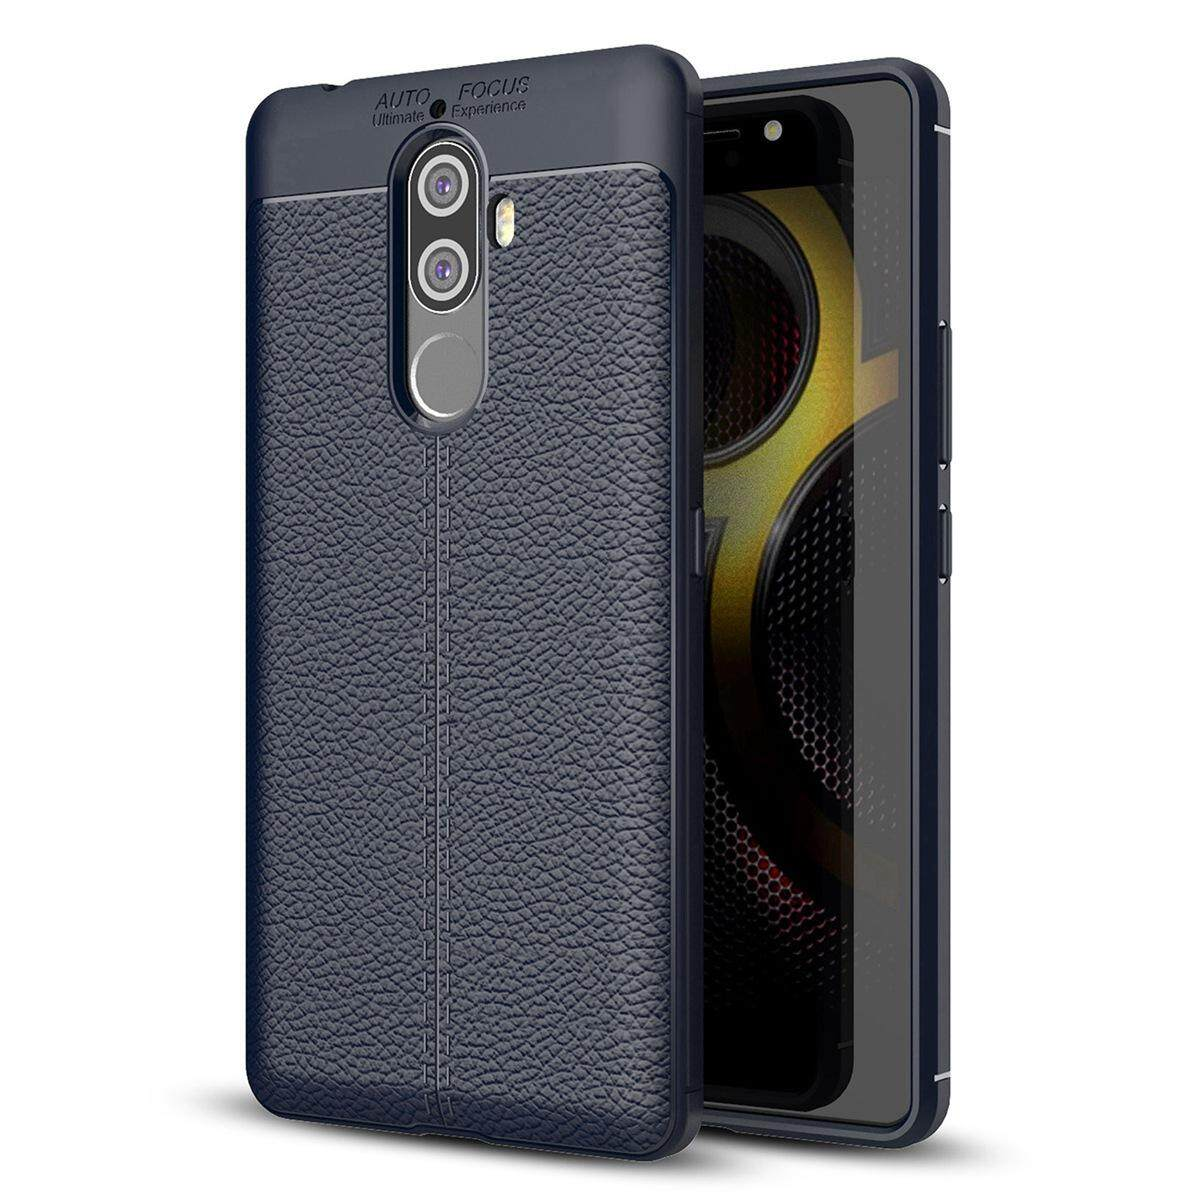 Lenovo K8 Note Case, Meishengkai Ultra Slim [Litchi Pattern] Resistant TPU Anti-Scratch Shock Absorption Protective Cover for Lenovo K8 Note 5.5